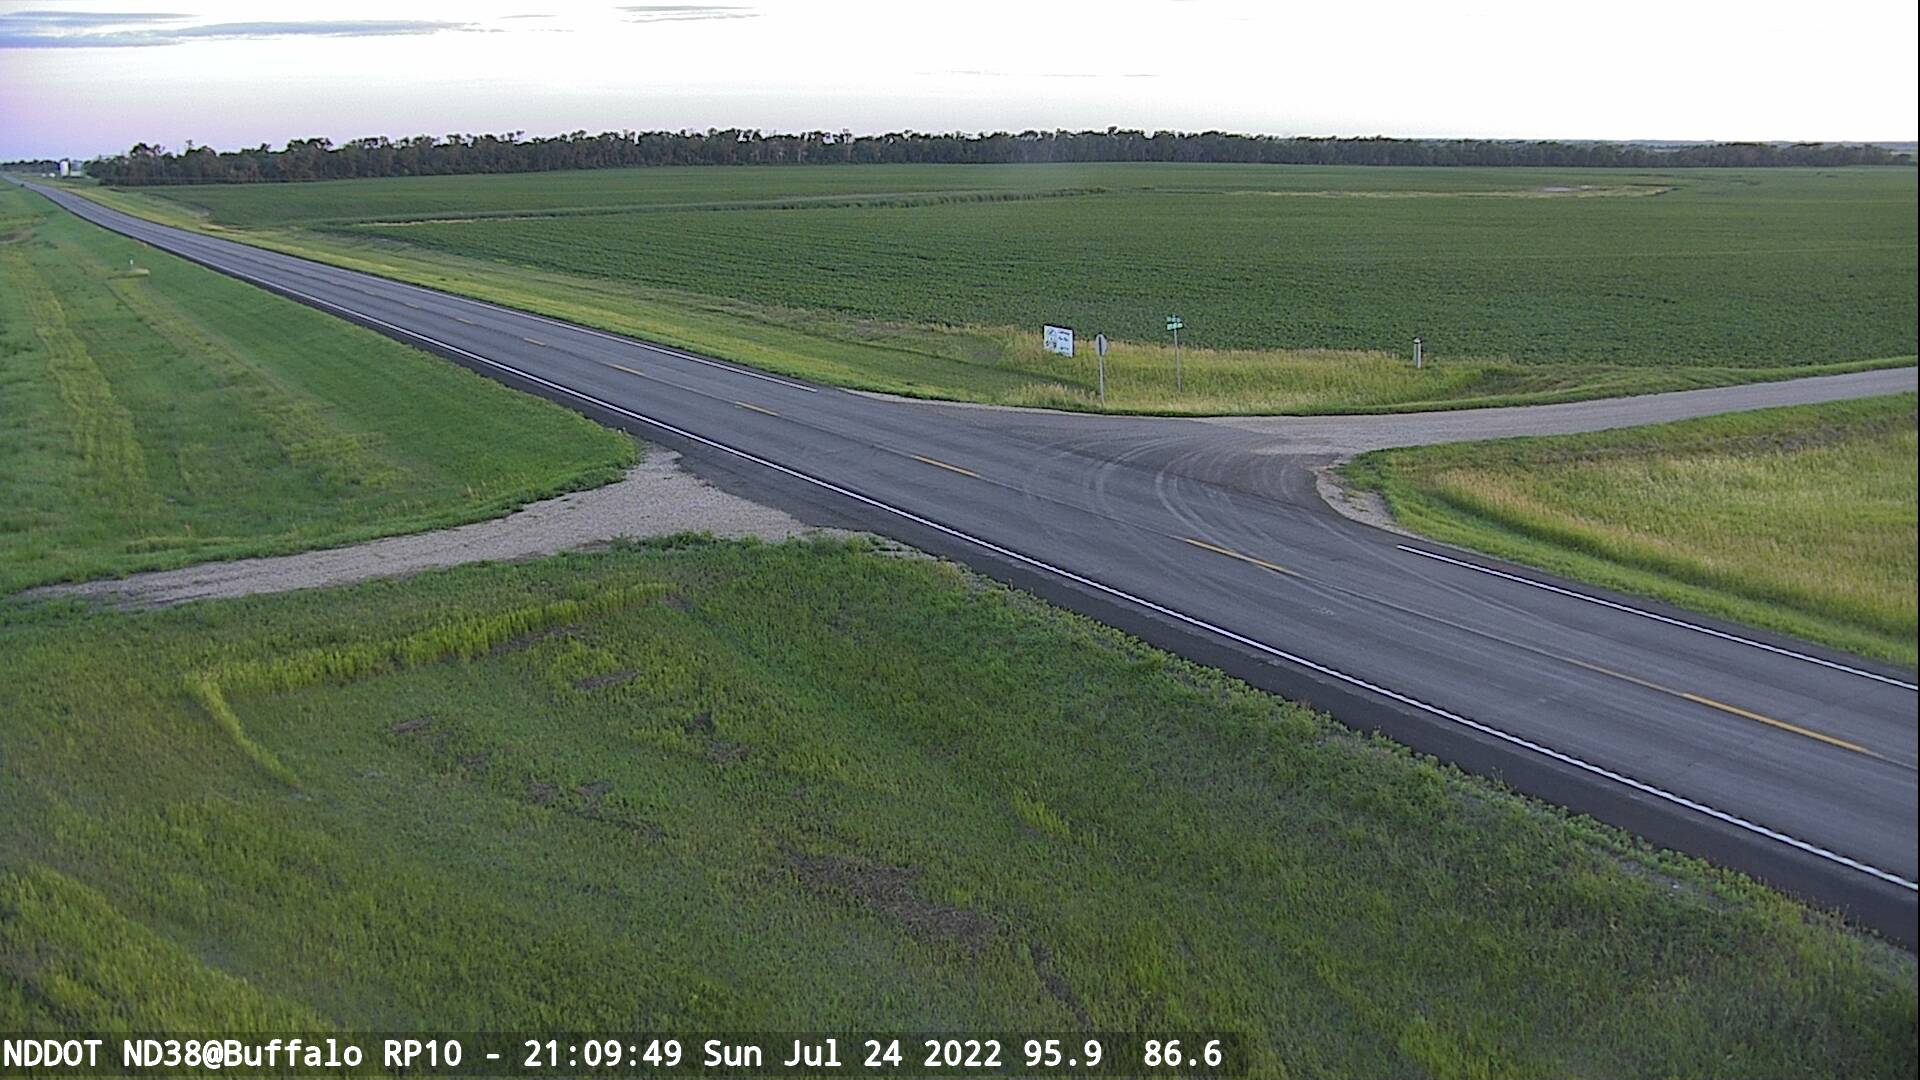 Buffalo - South (ND 38 MP 10) - NDDOT